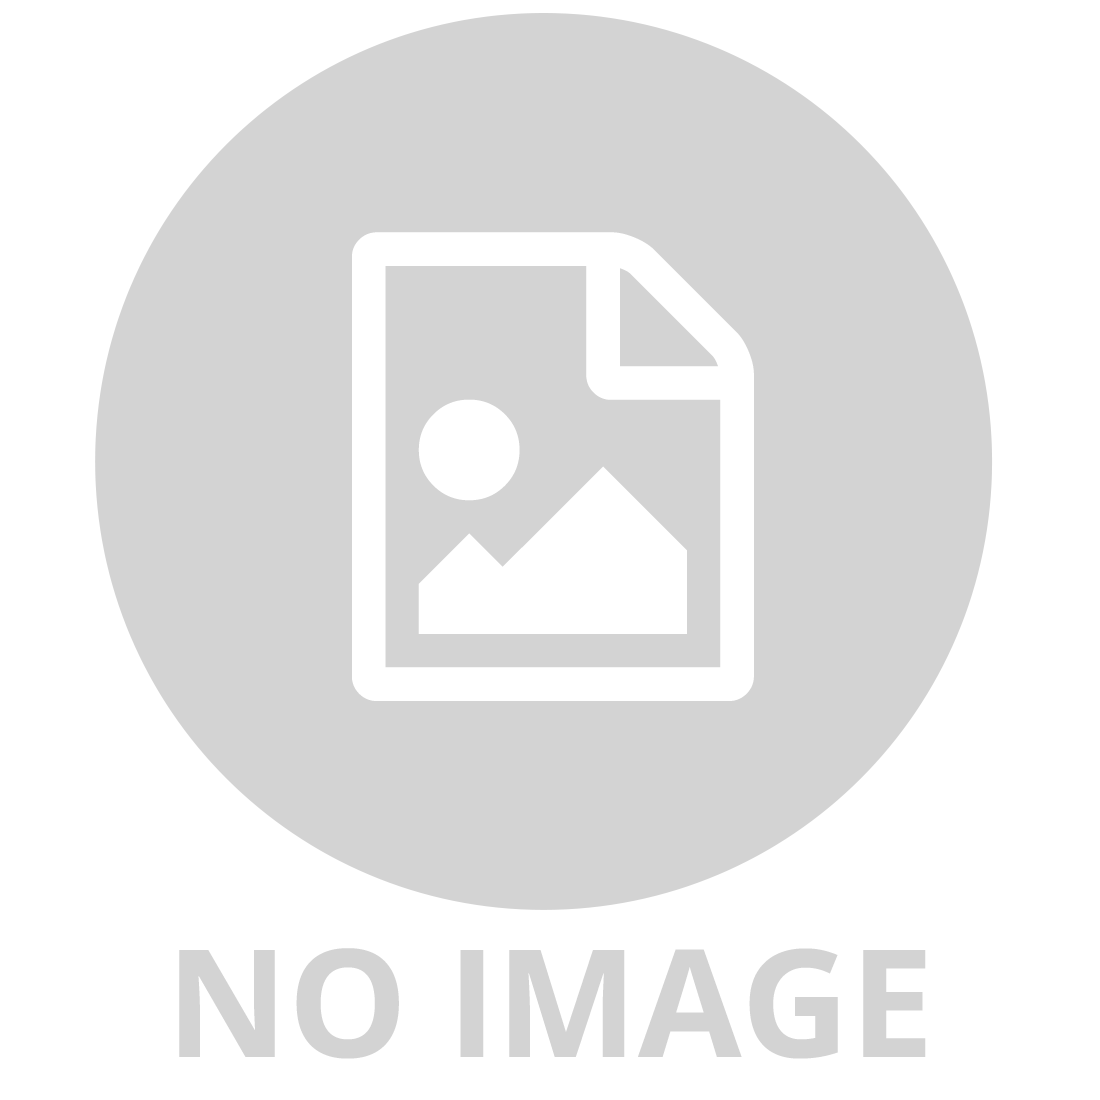 Fiore Blue/White 06-181 Table Lamp